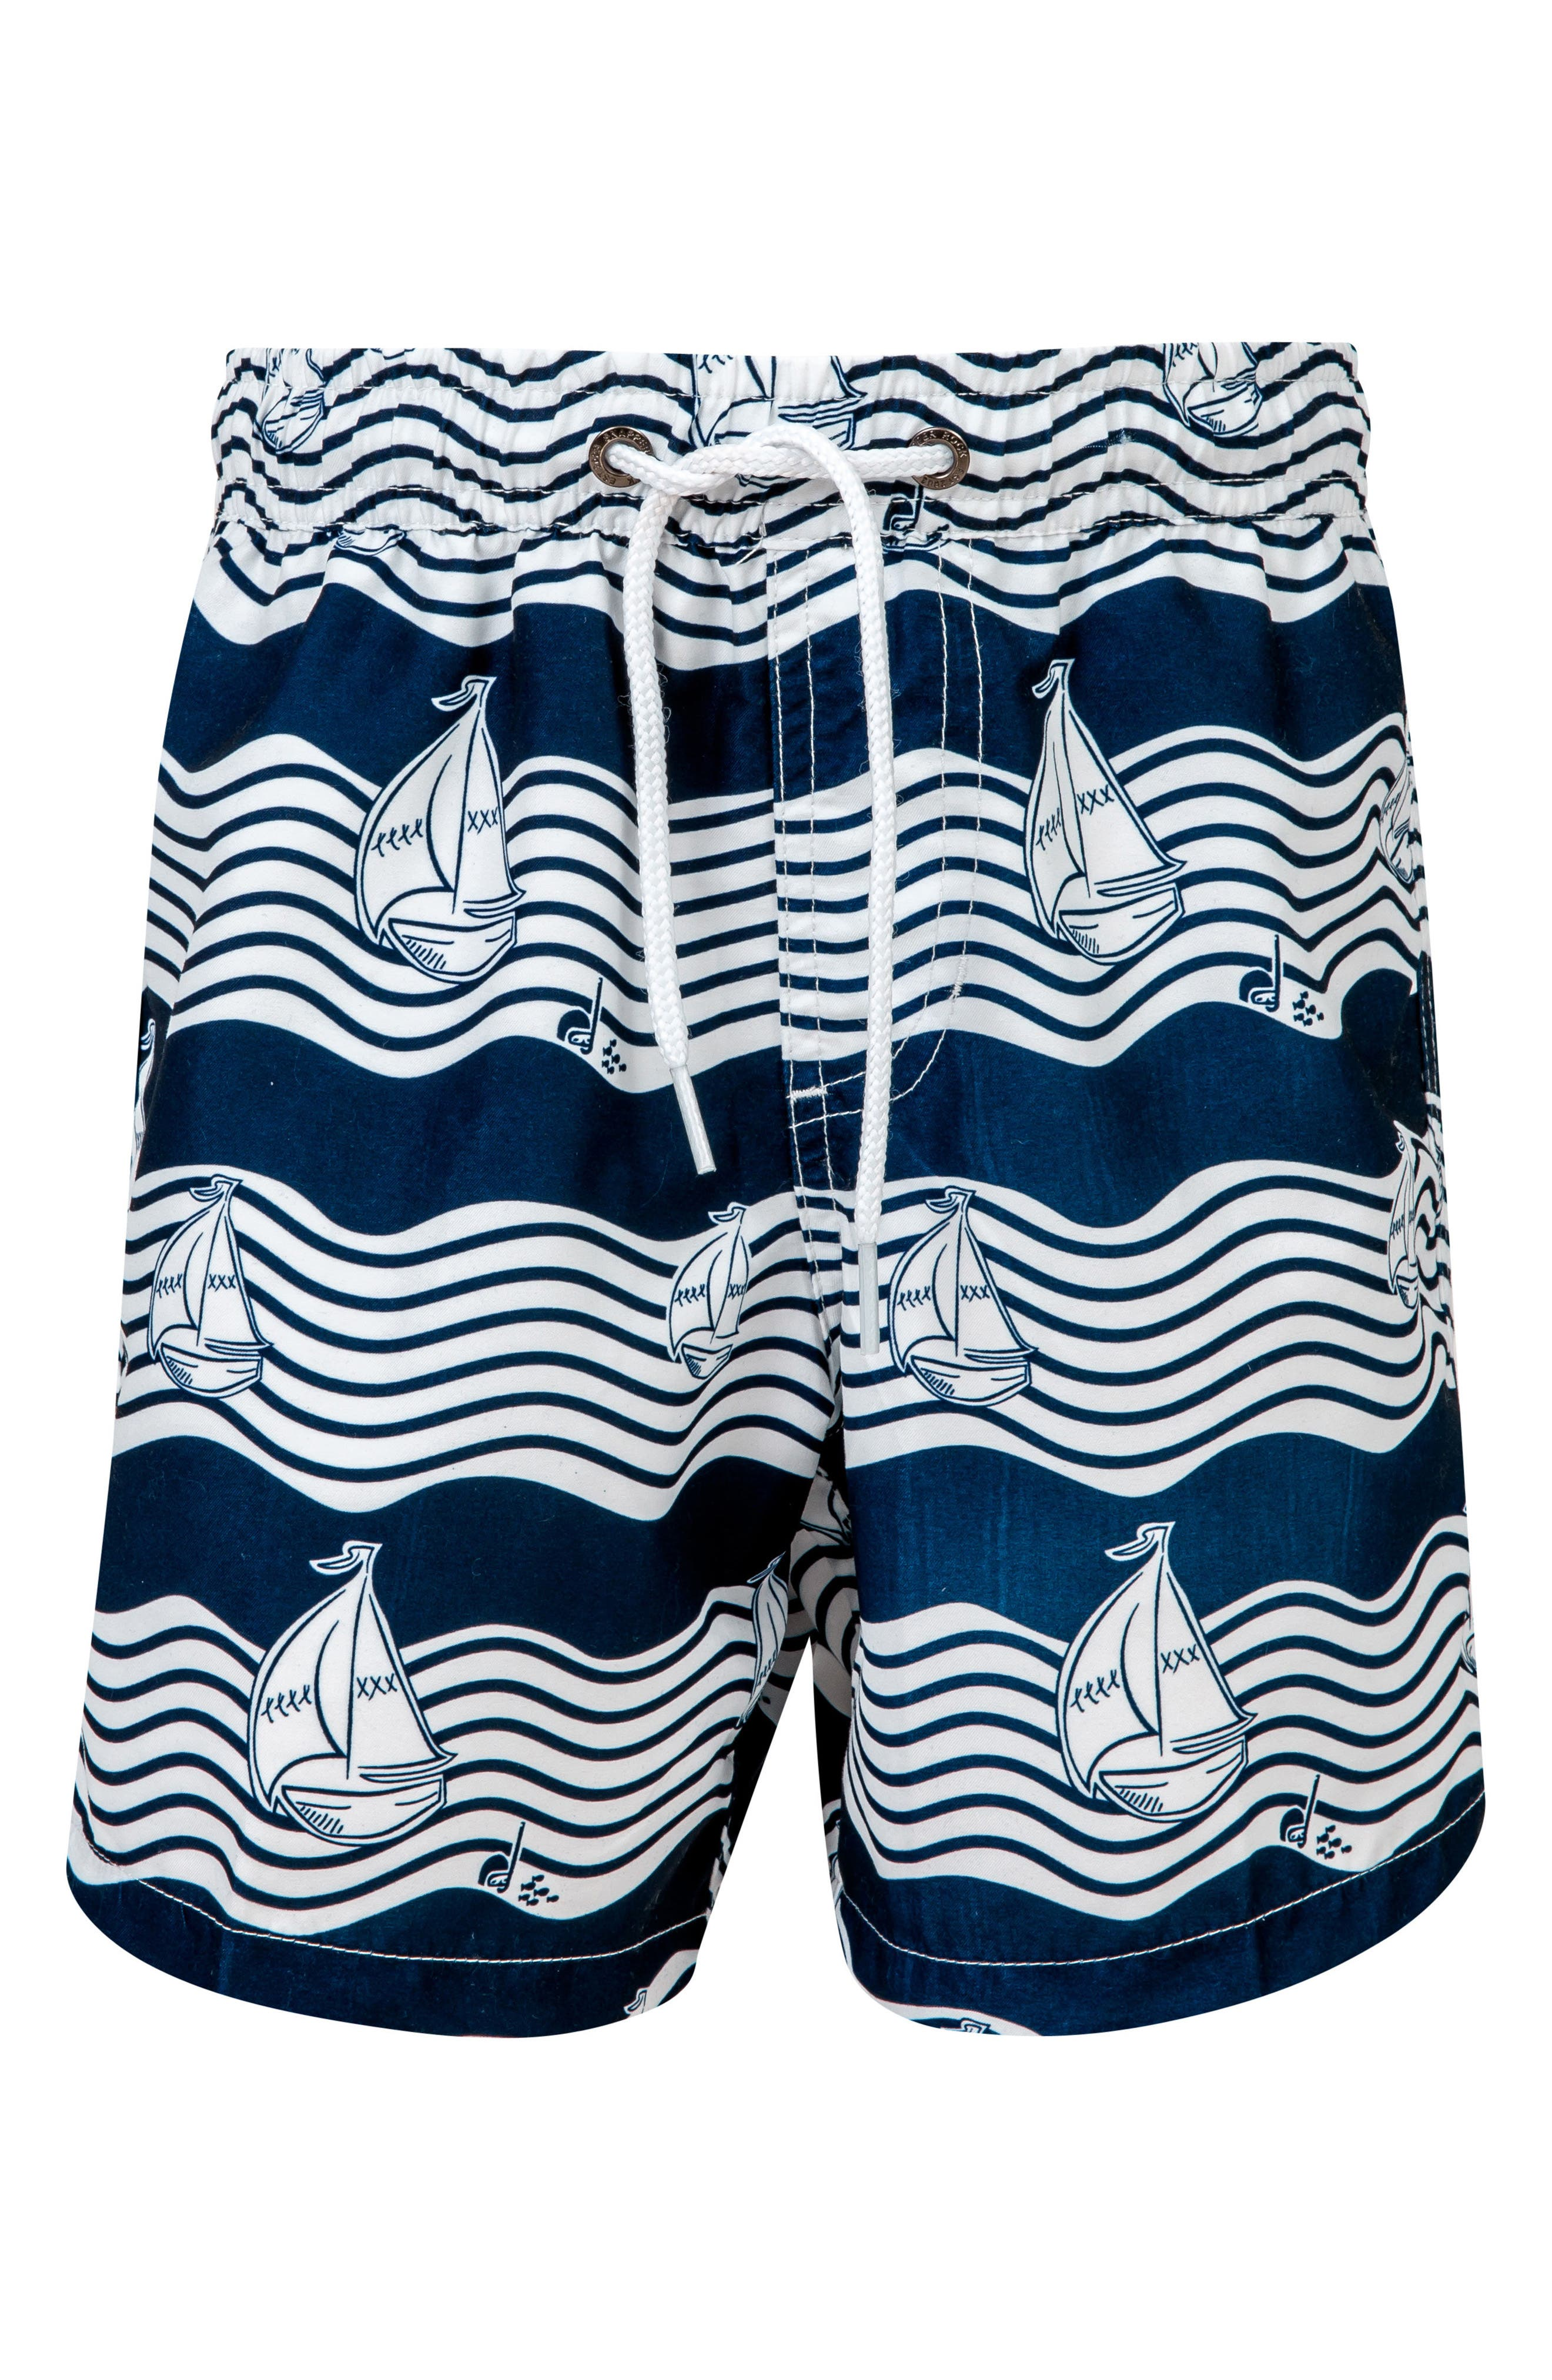 Snapper Rock Ocean Explorer Board Shorts (Baby Boys, Toddler Boys & Little Boys)